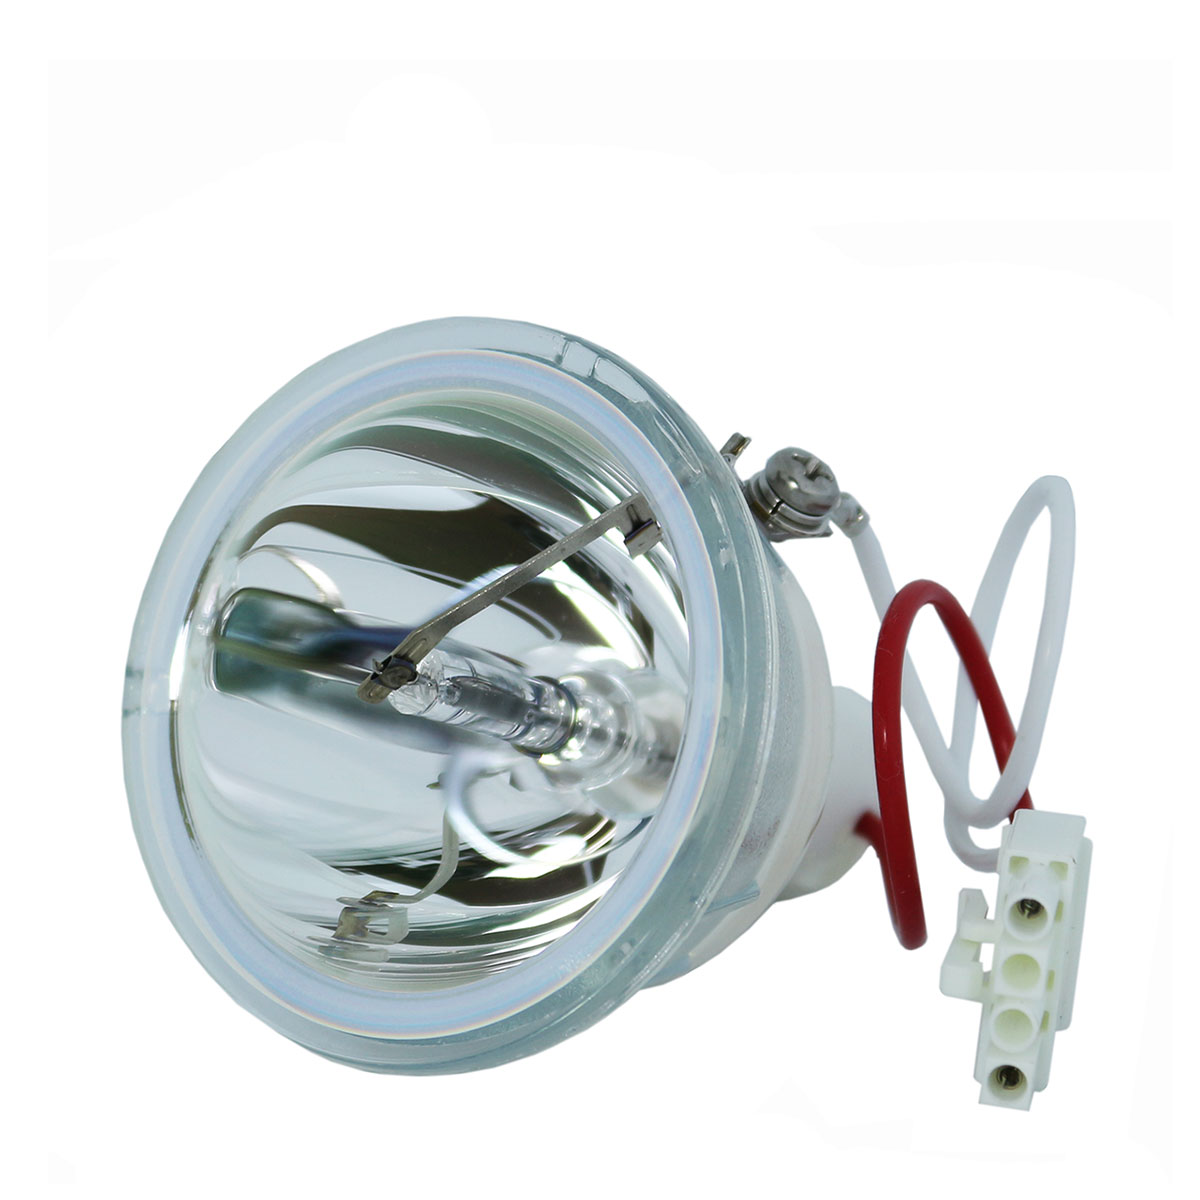 Compatible Bare Bulb SP-LAMP-028 for Infocus IN24+ / IN24+EP / IN26+ / IN26+EP / W260+ Projector Bulb Lamp Without housing with shp107 mercury lamp sp lamp 028 with housing for infocus projector in24 ep in24 in26 ep in26